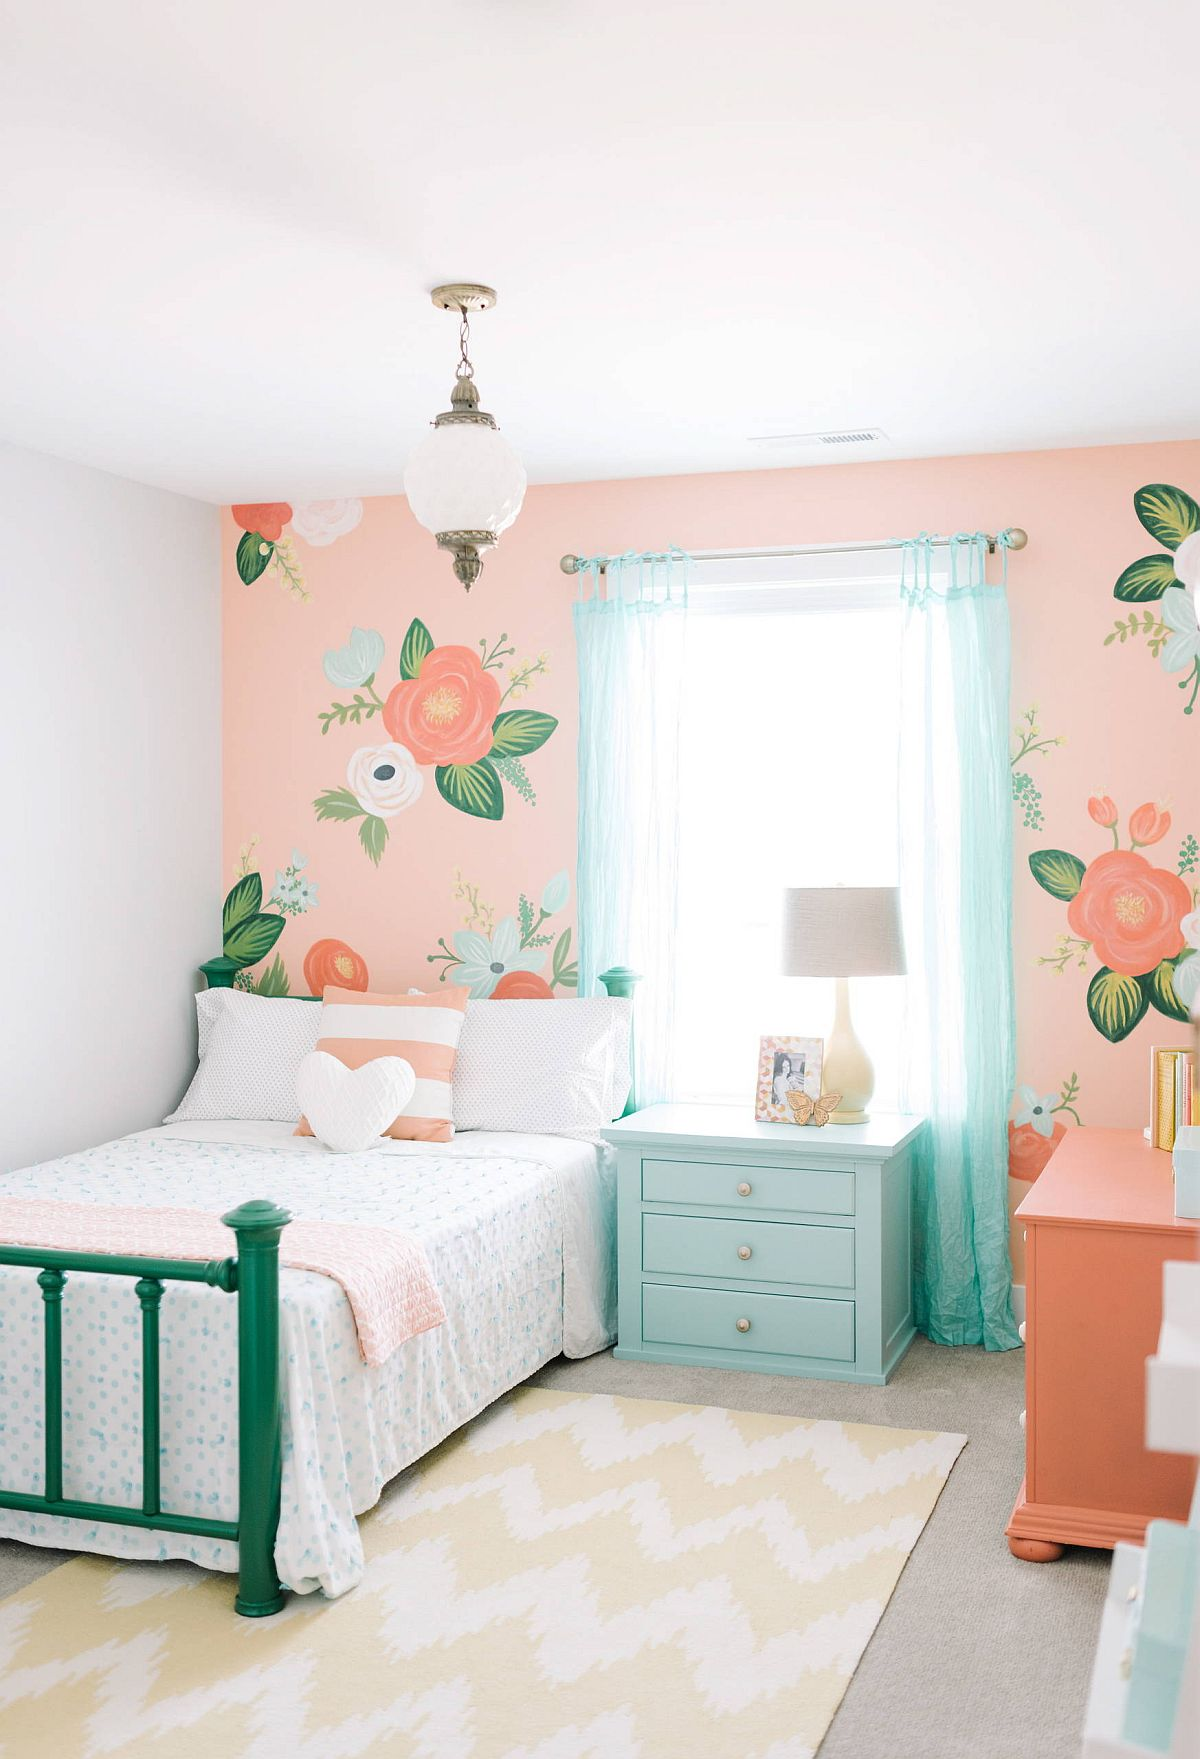 Beautiful floral wallpaper in pink steals the show in this small kids' bedroom